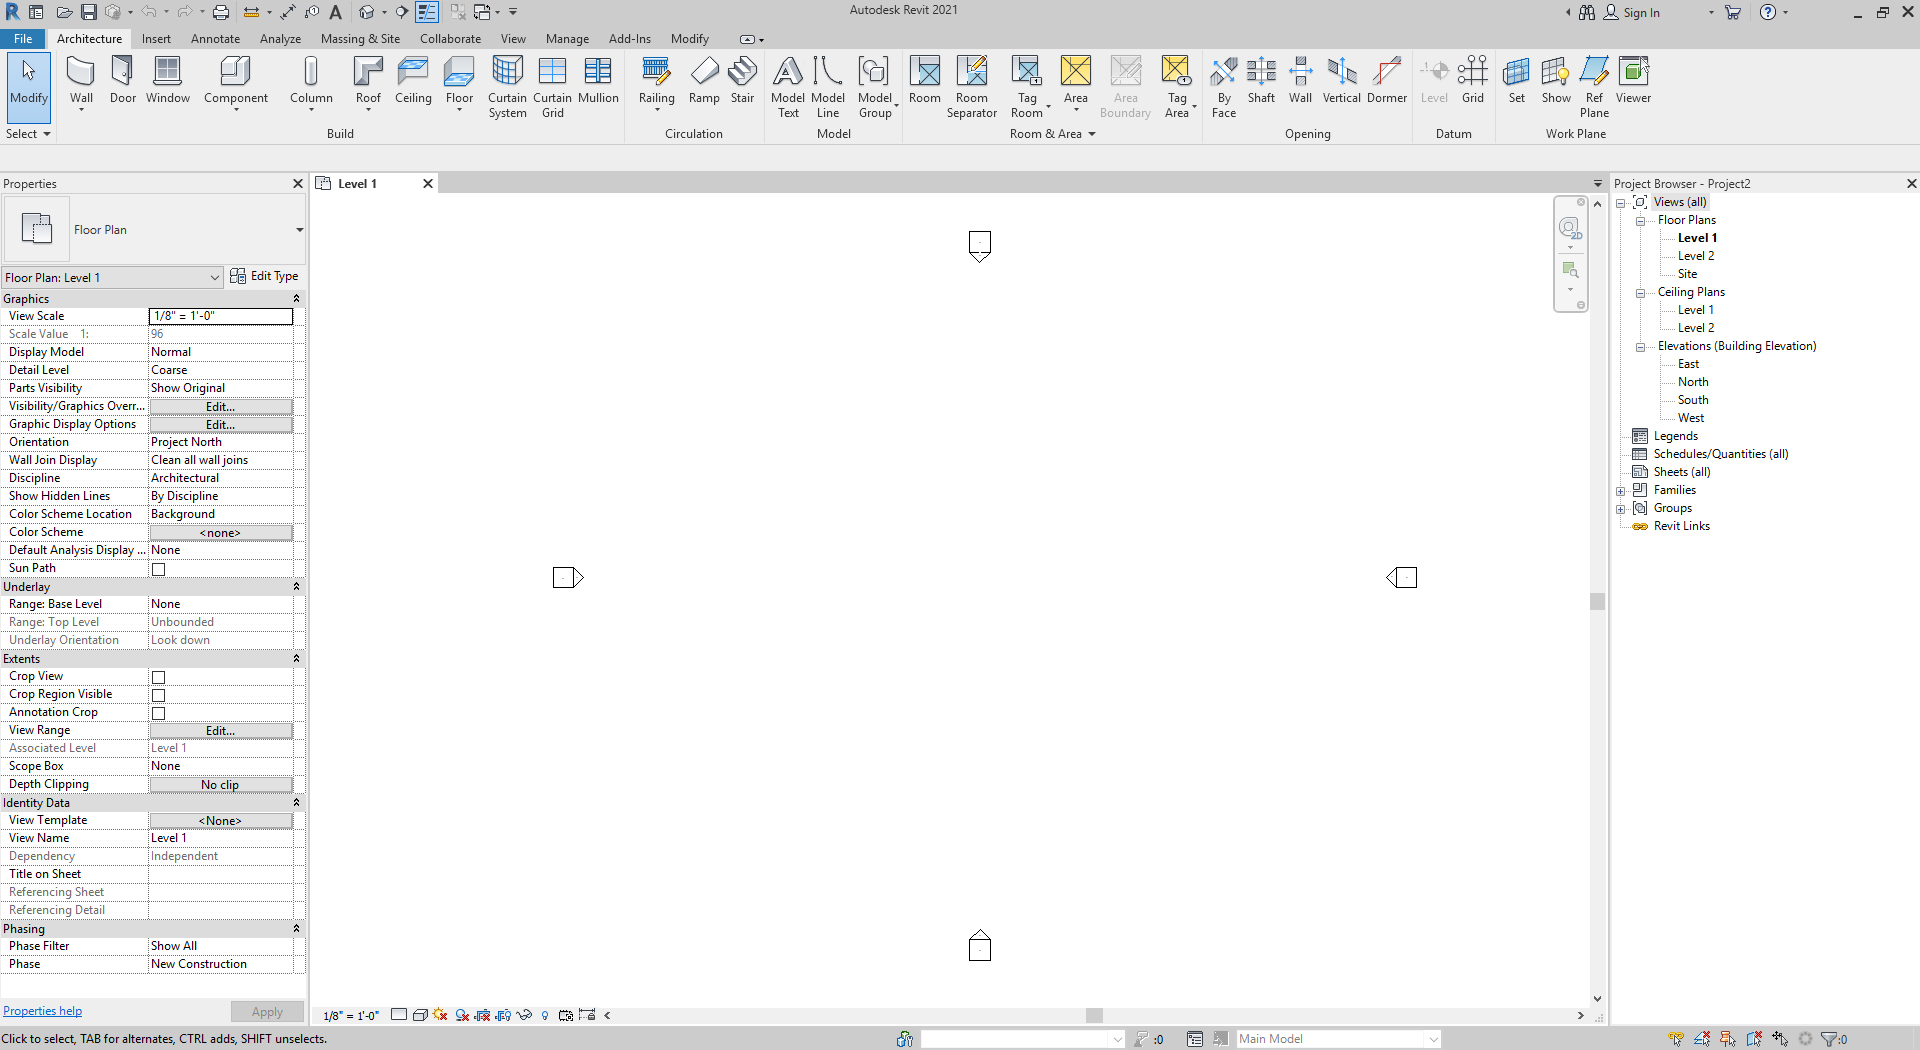 It shows the new revit project and the user interface.